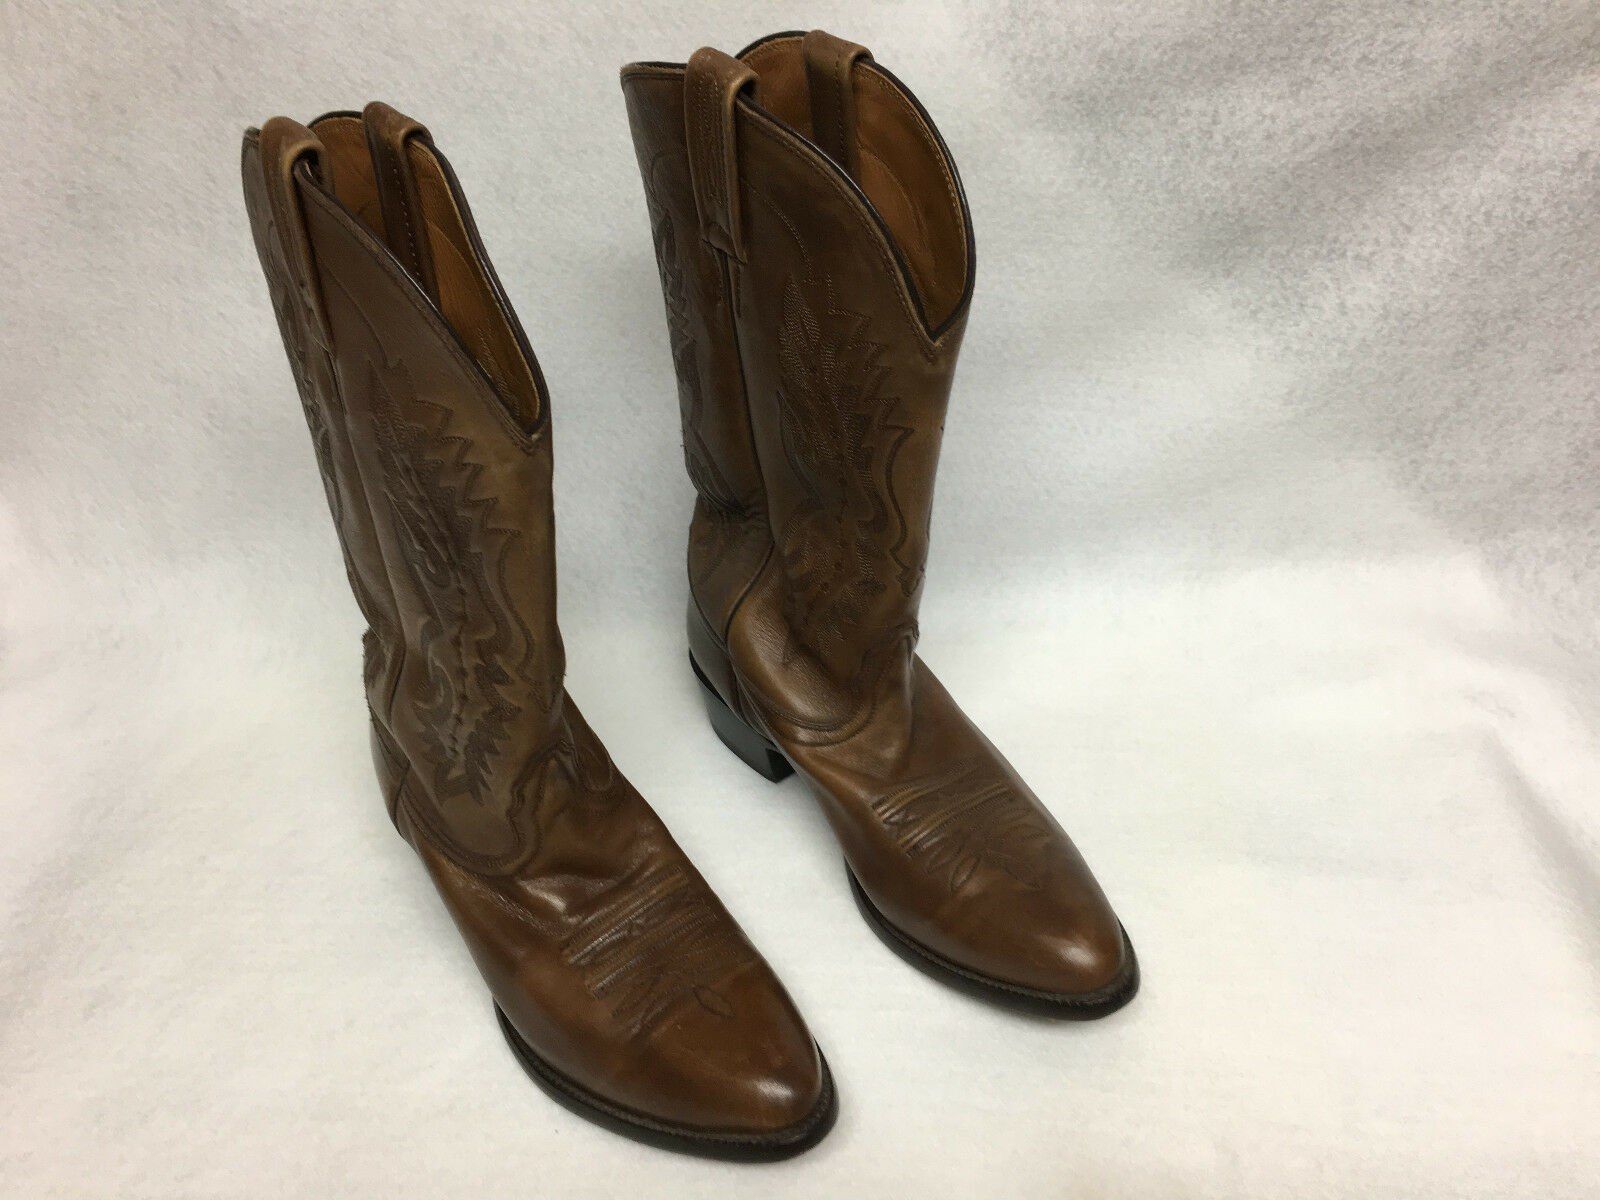 NOKONA MENS BROWN LEATHER COWBOY BOOTS SIZE 9 D VERY NICE